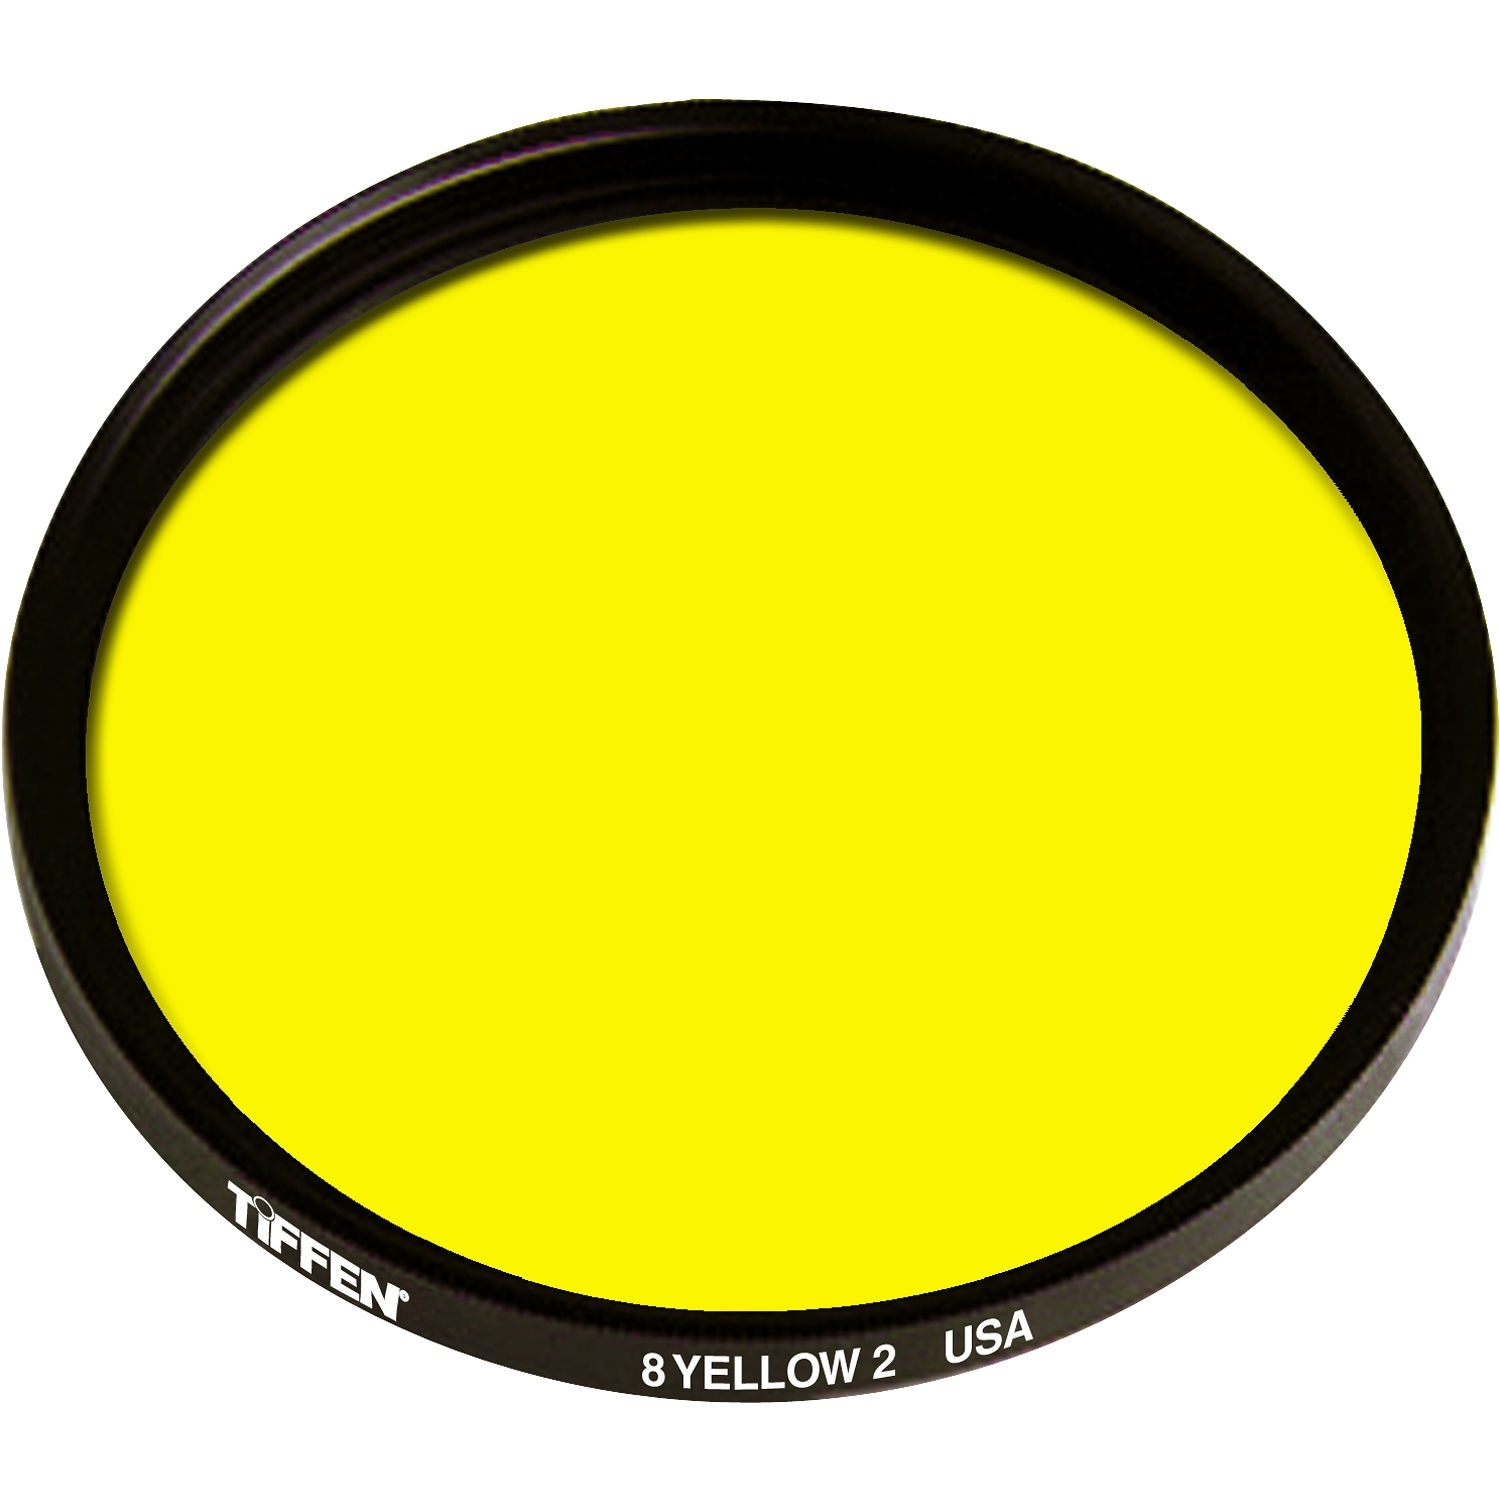 Tiffen 49mm Yellow 2 8 Glass Filter for Black & White Film